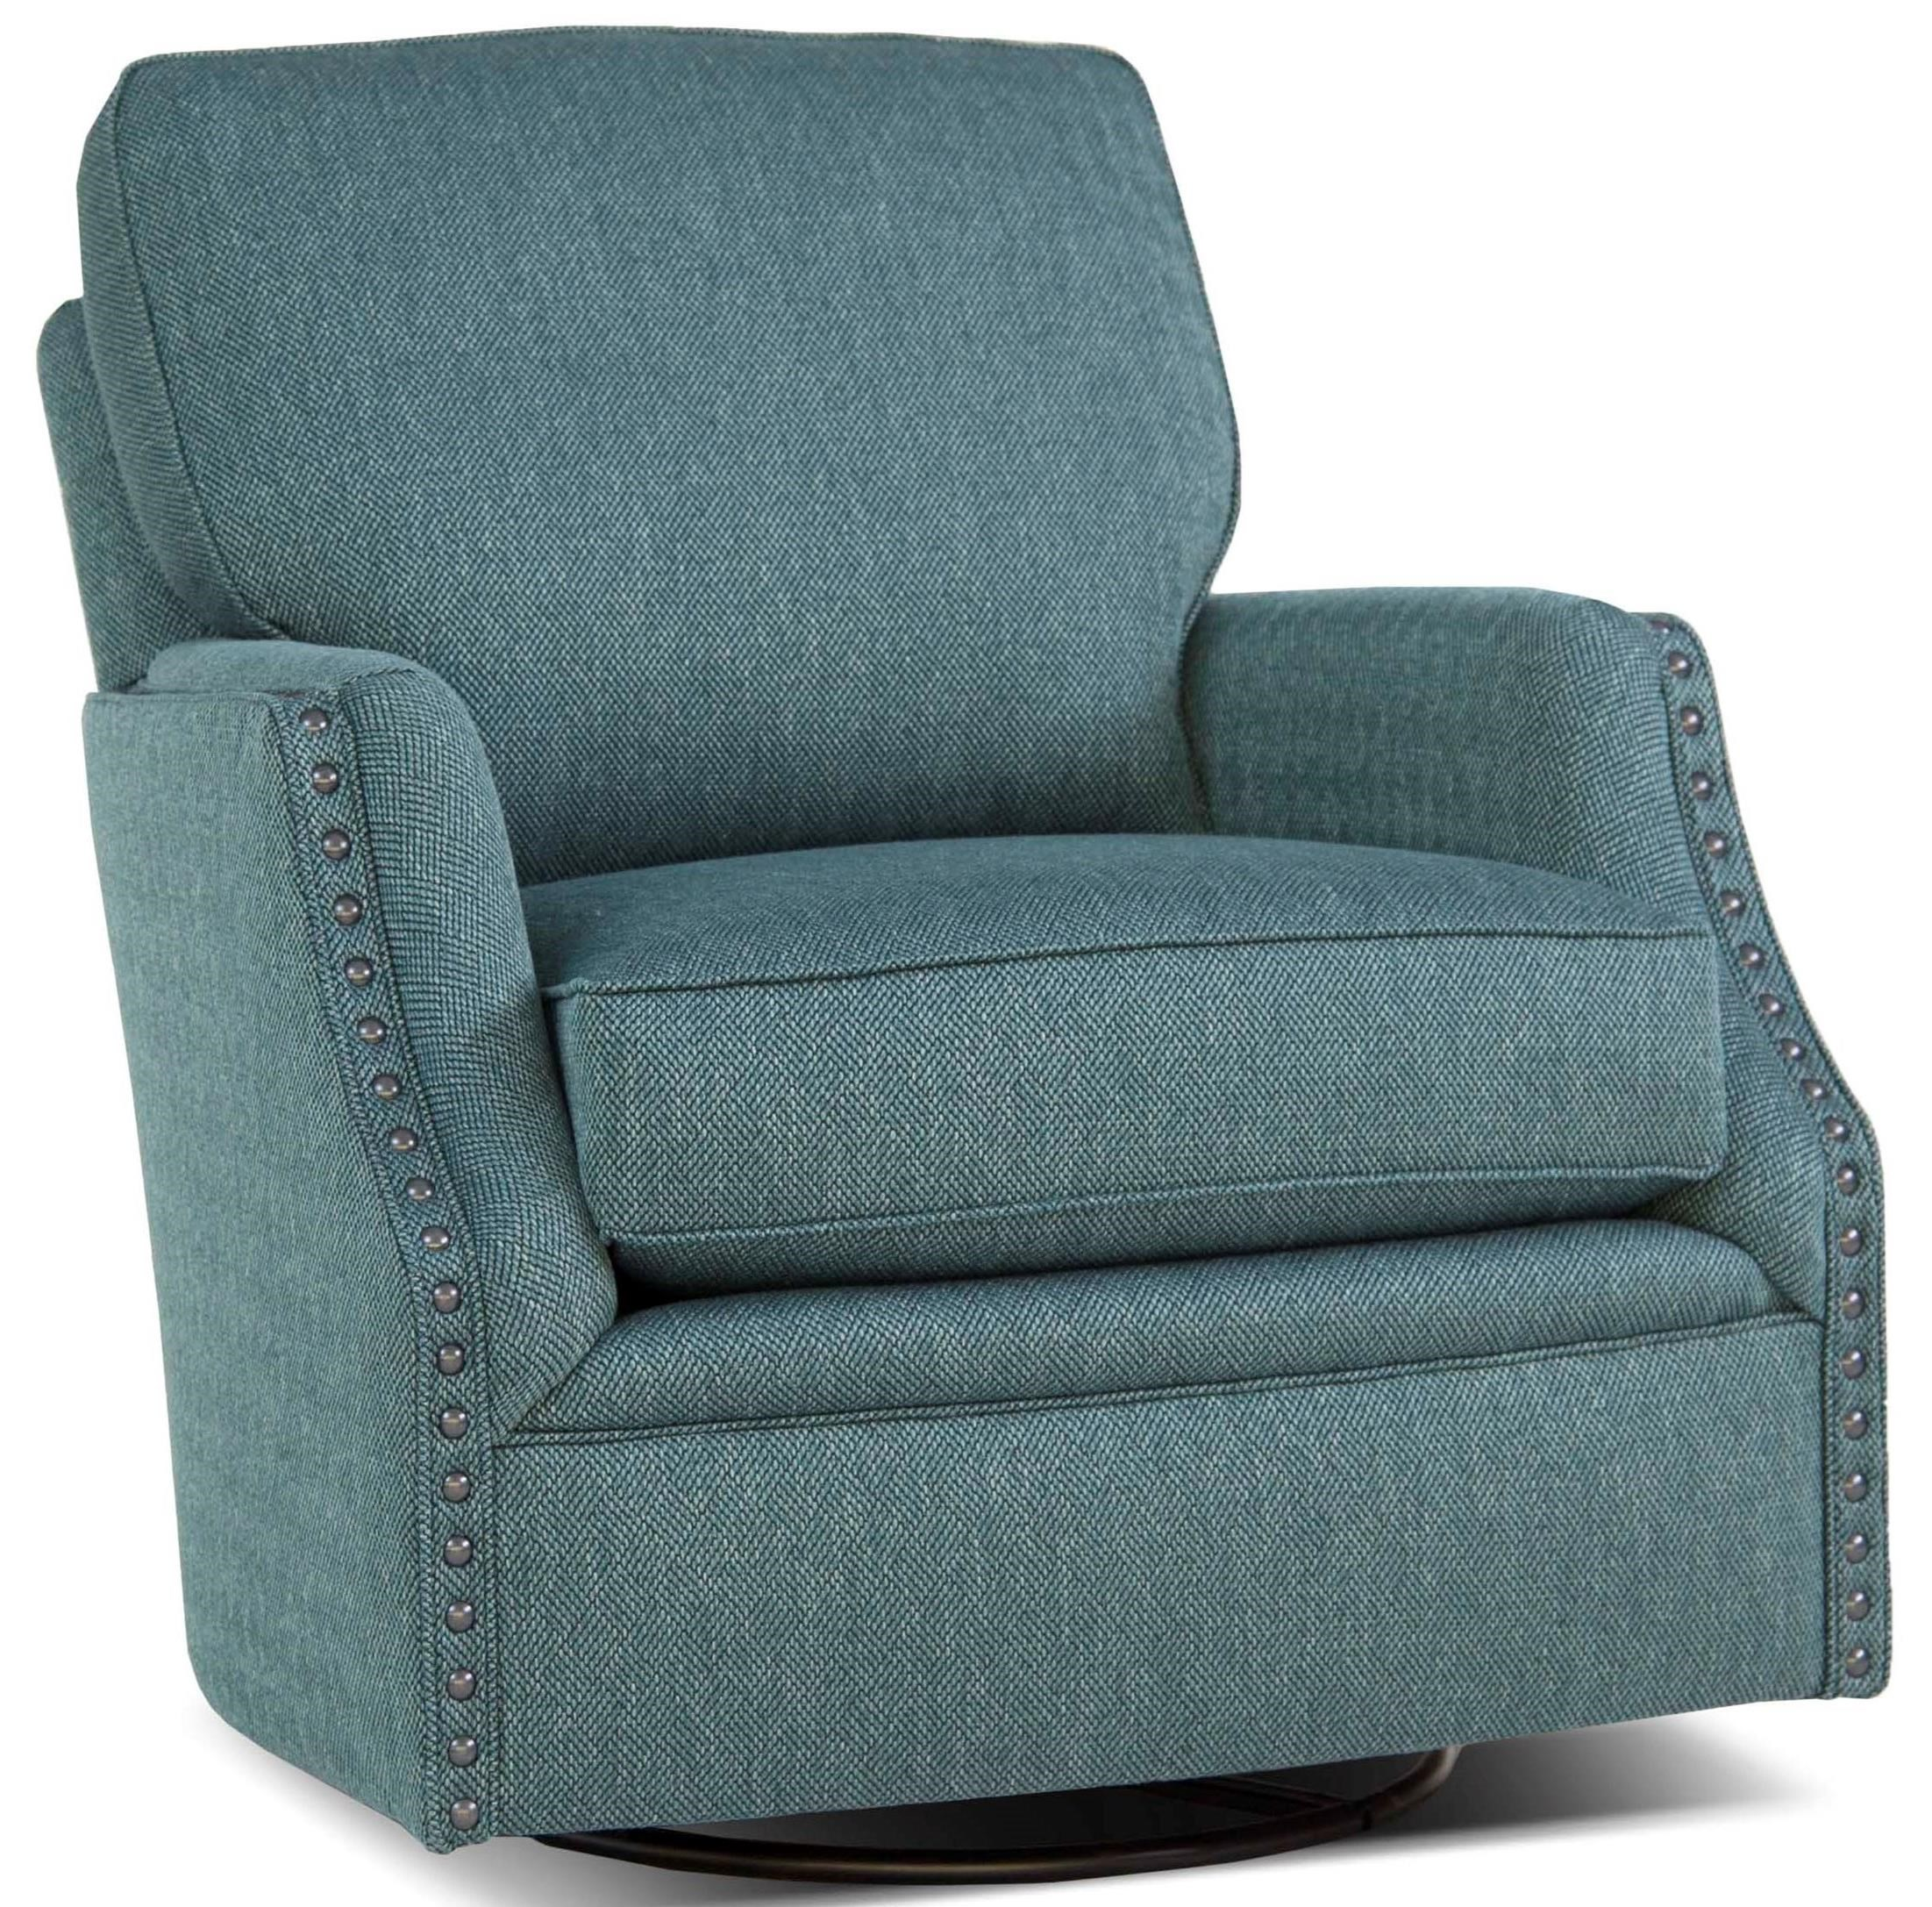 526 Swivel Glider Chair by Smith Brothers at Sprintz Furniture